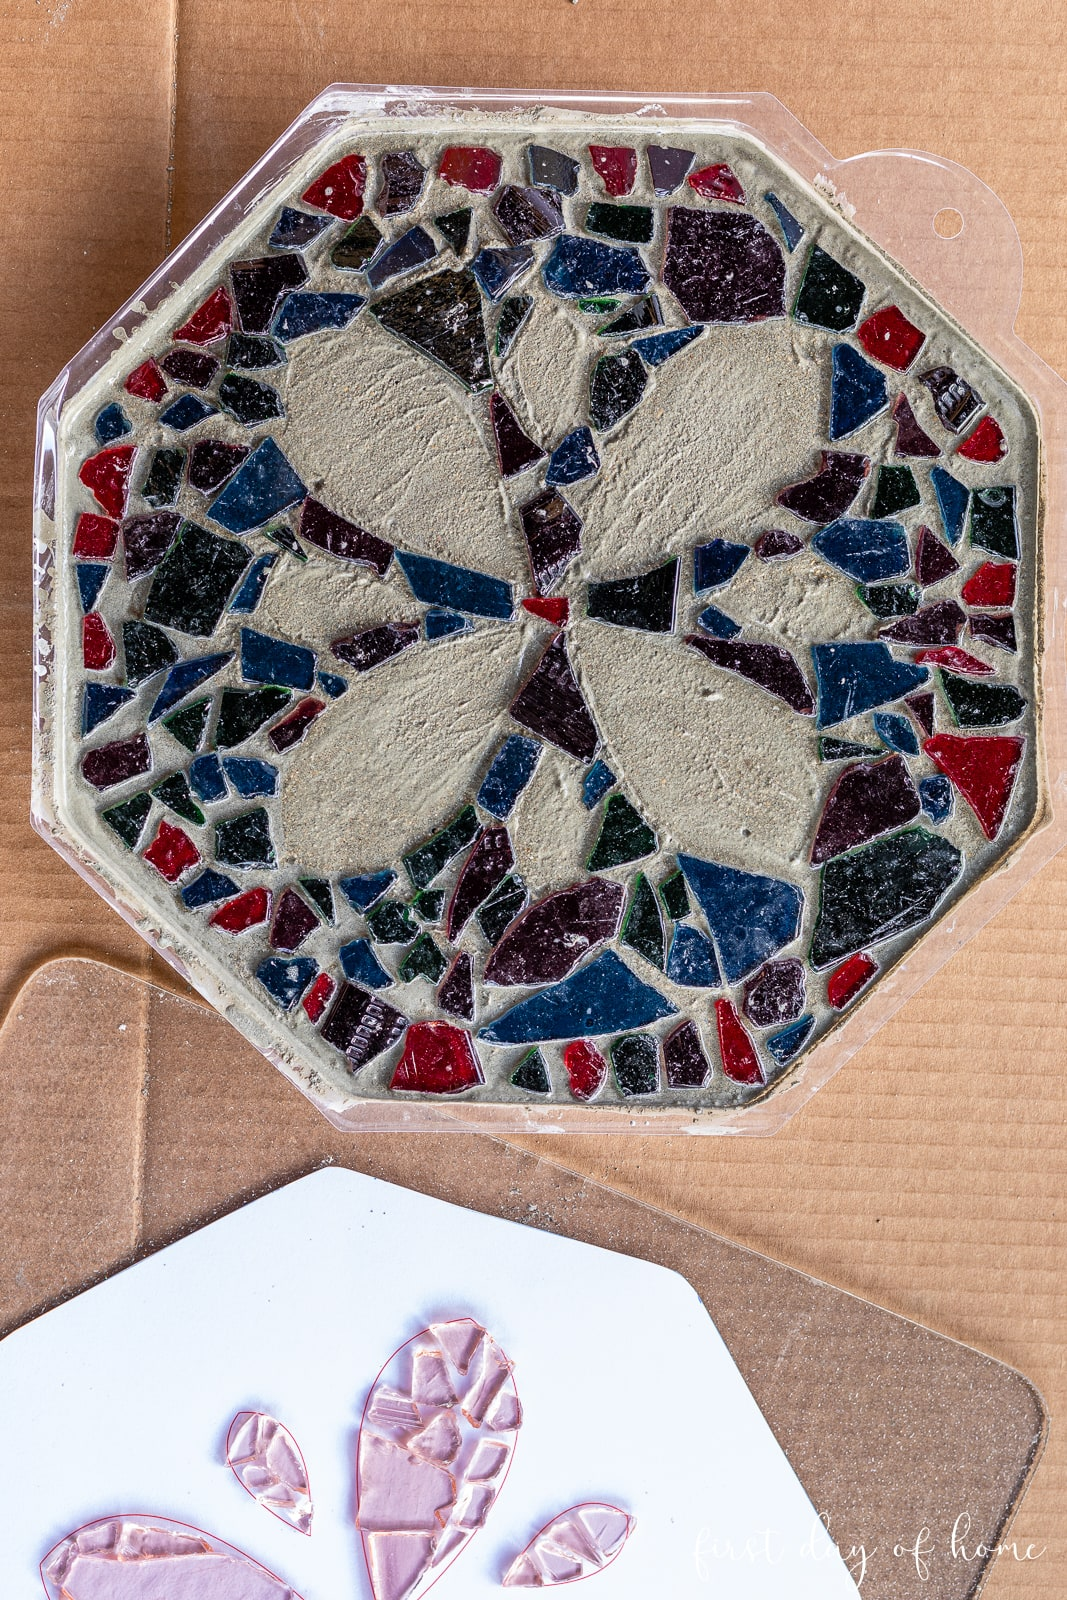 Stepping stone mix in mold with mosaic tiles being placed